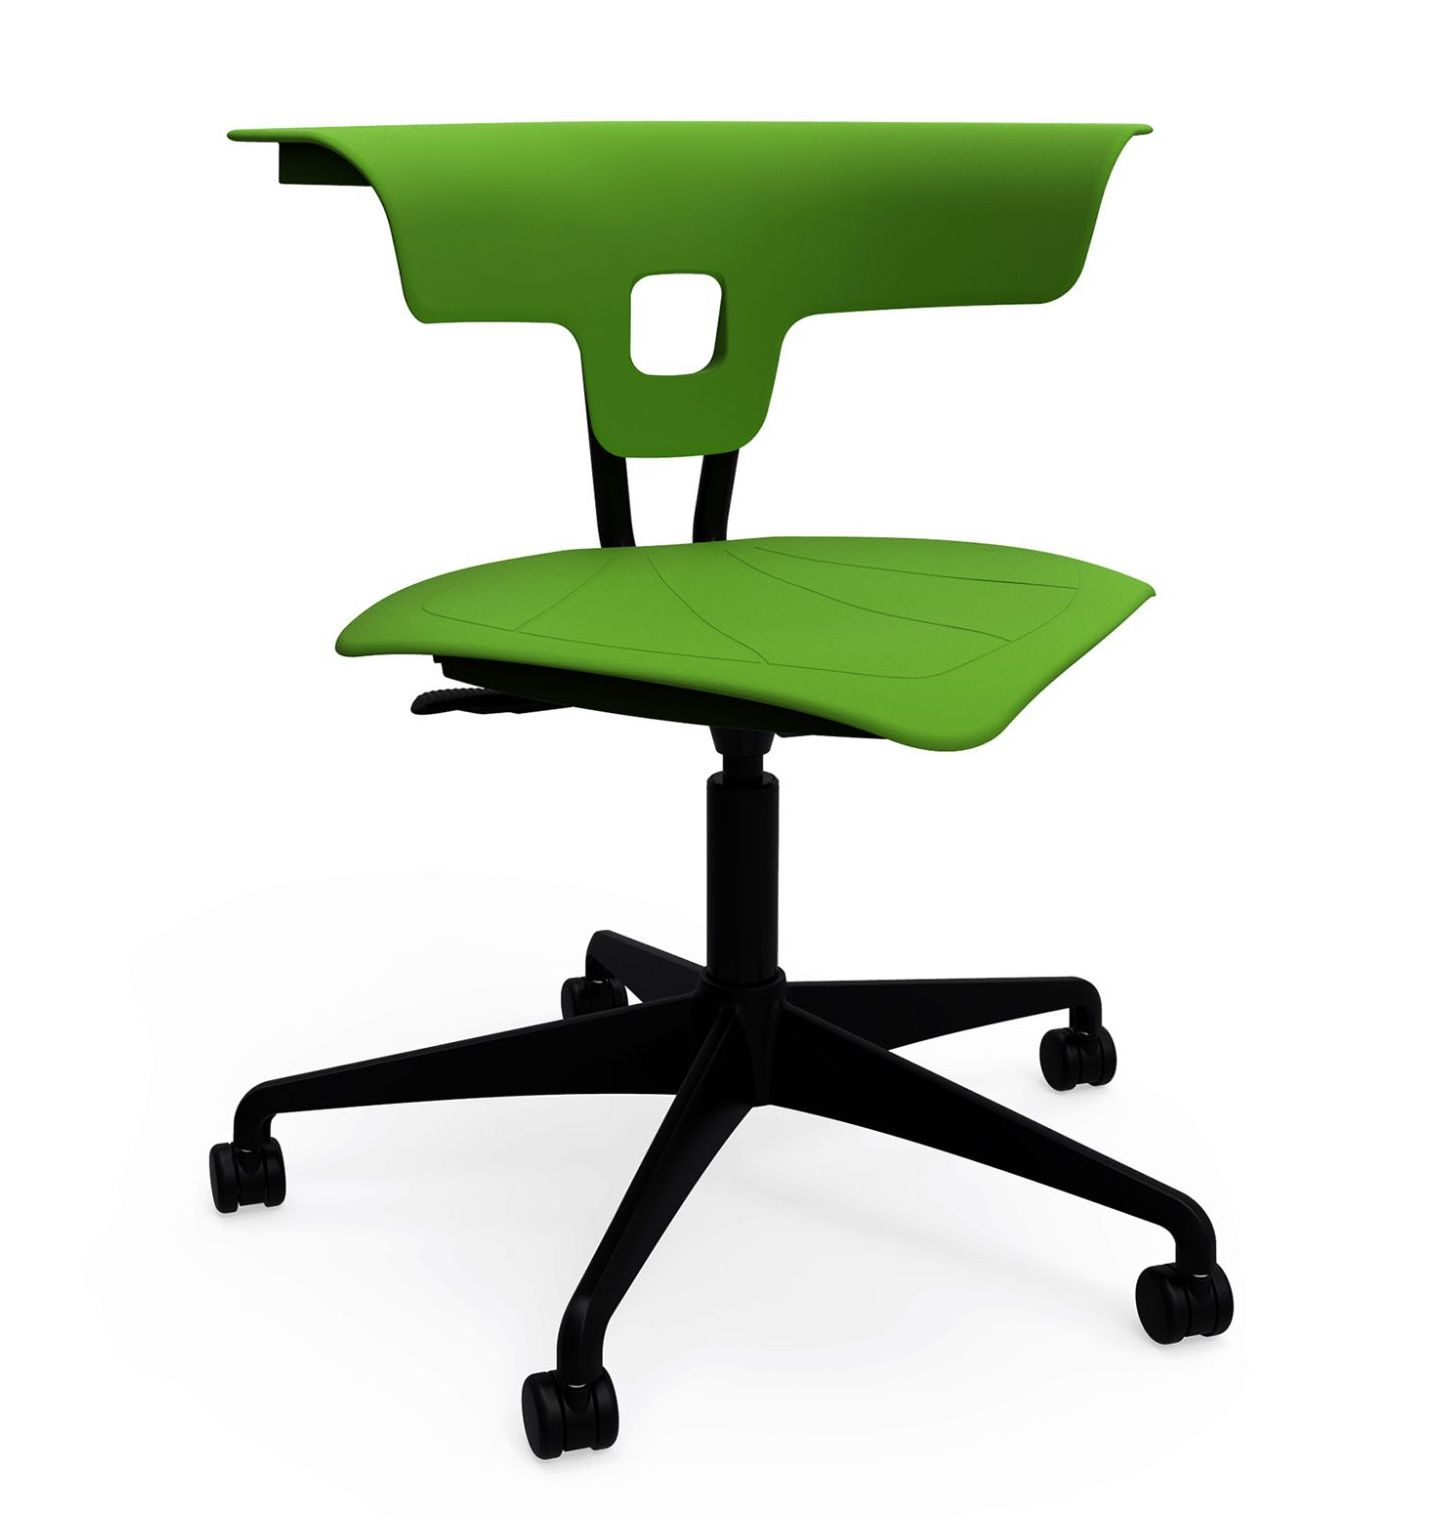 ki ruckus polypropylene task chair